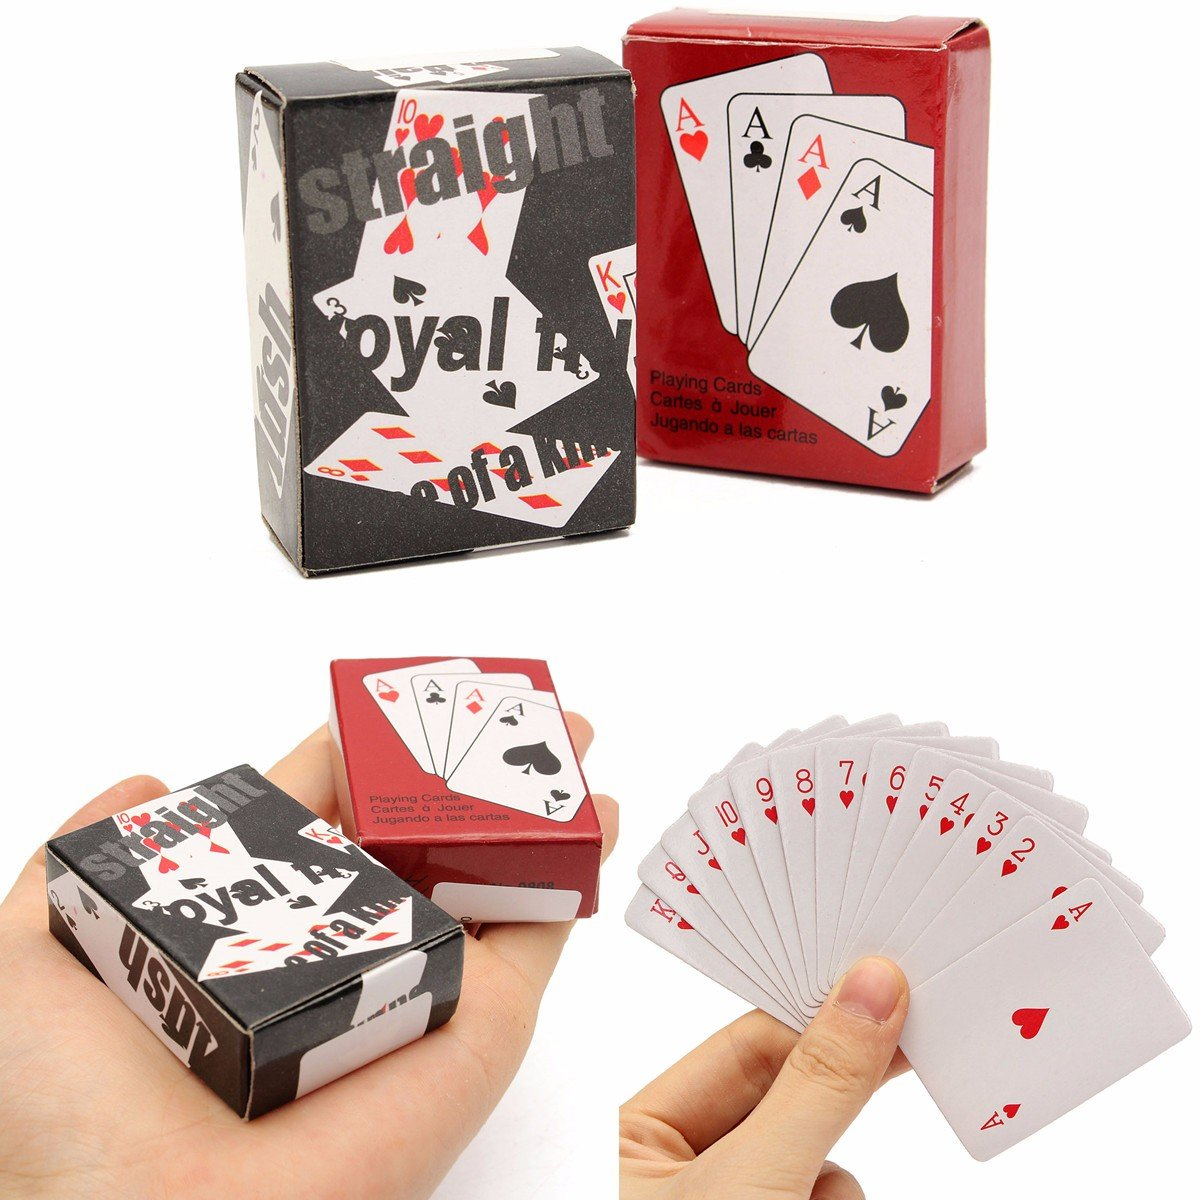 Amazon.com: Board Game Toys - Mini Playing Cards Deck ...